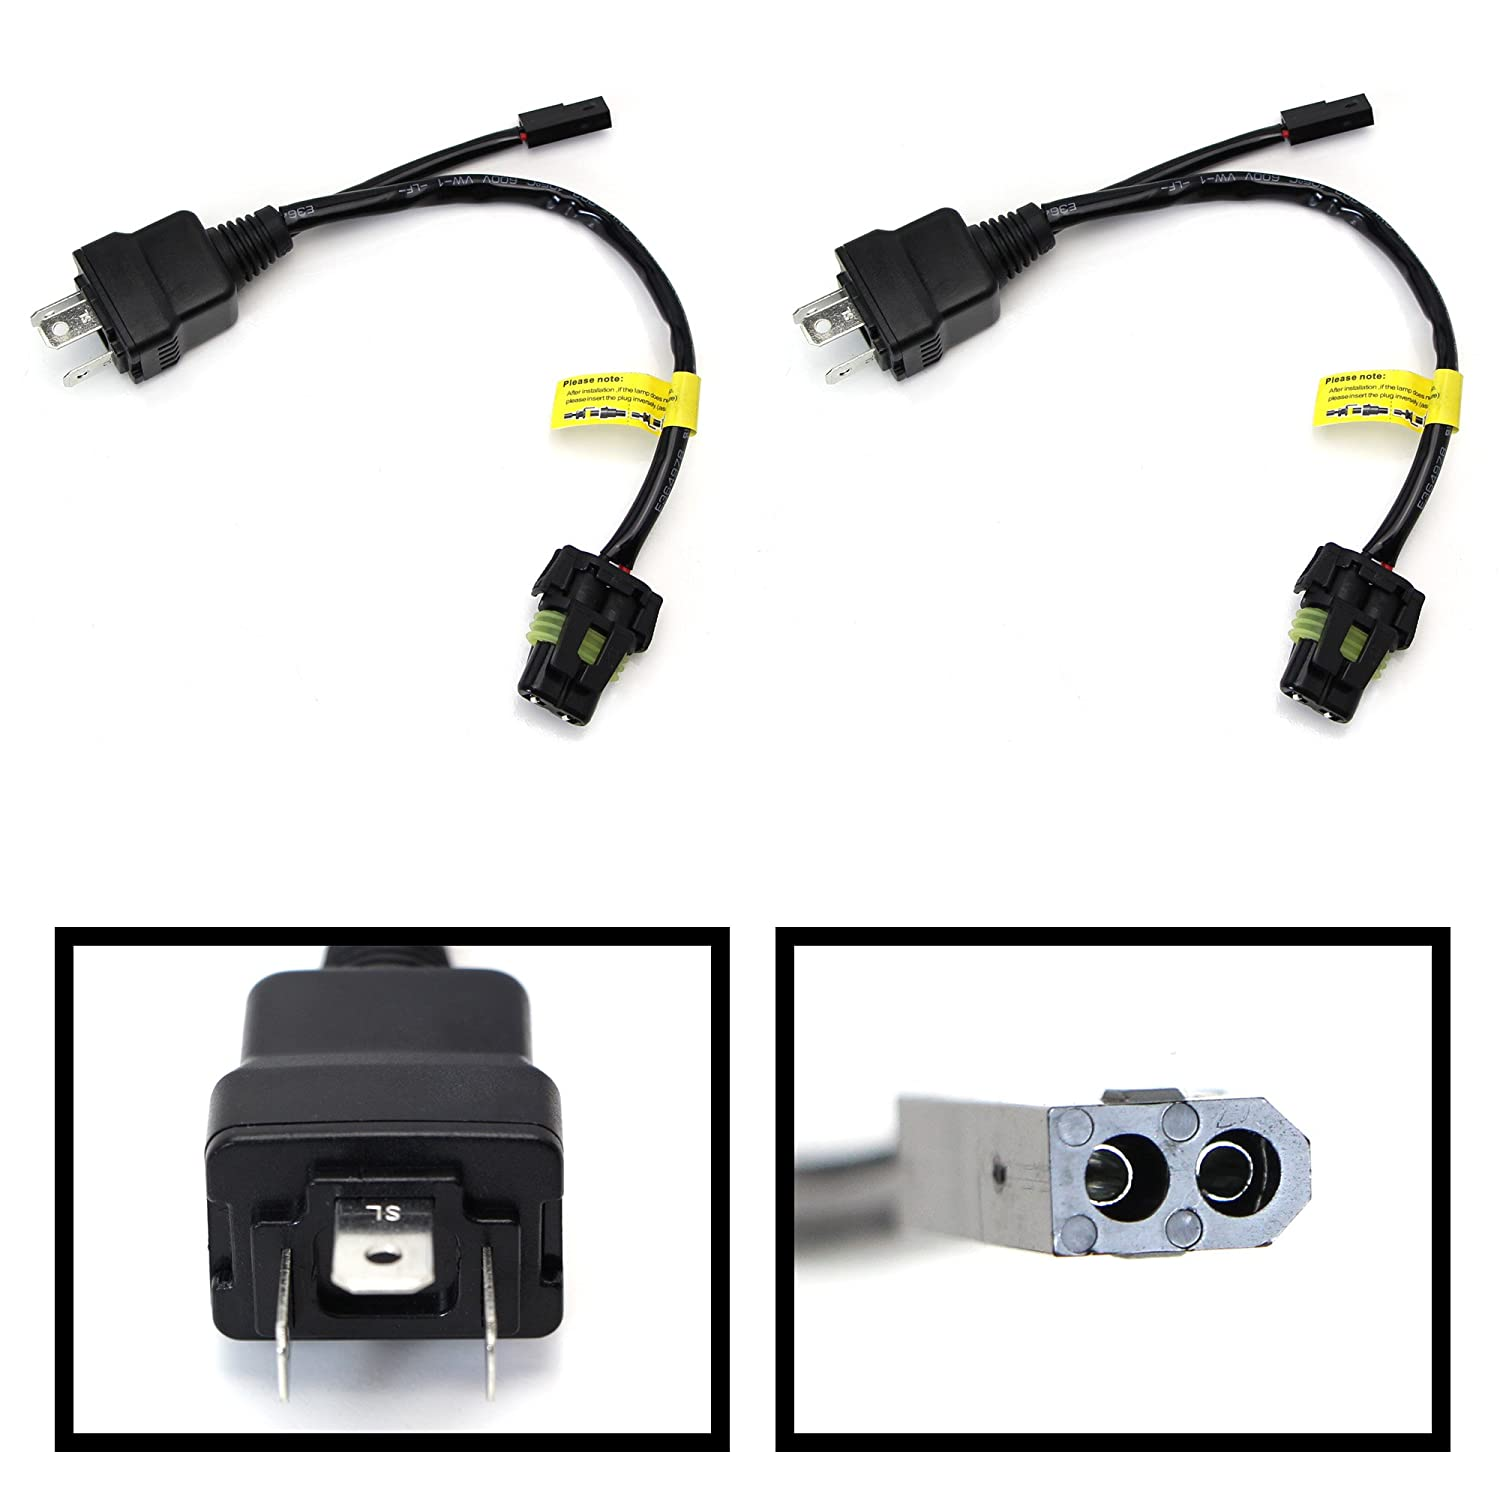 71cAasnEn0L._SL1500_ amazon com ijdmtoy (2) easy relay harness for h4 9003 hi lo bi  at reclaimingppi.co